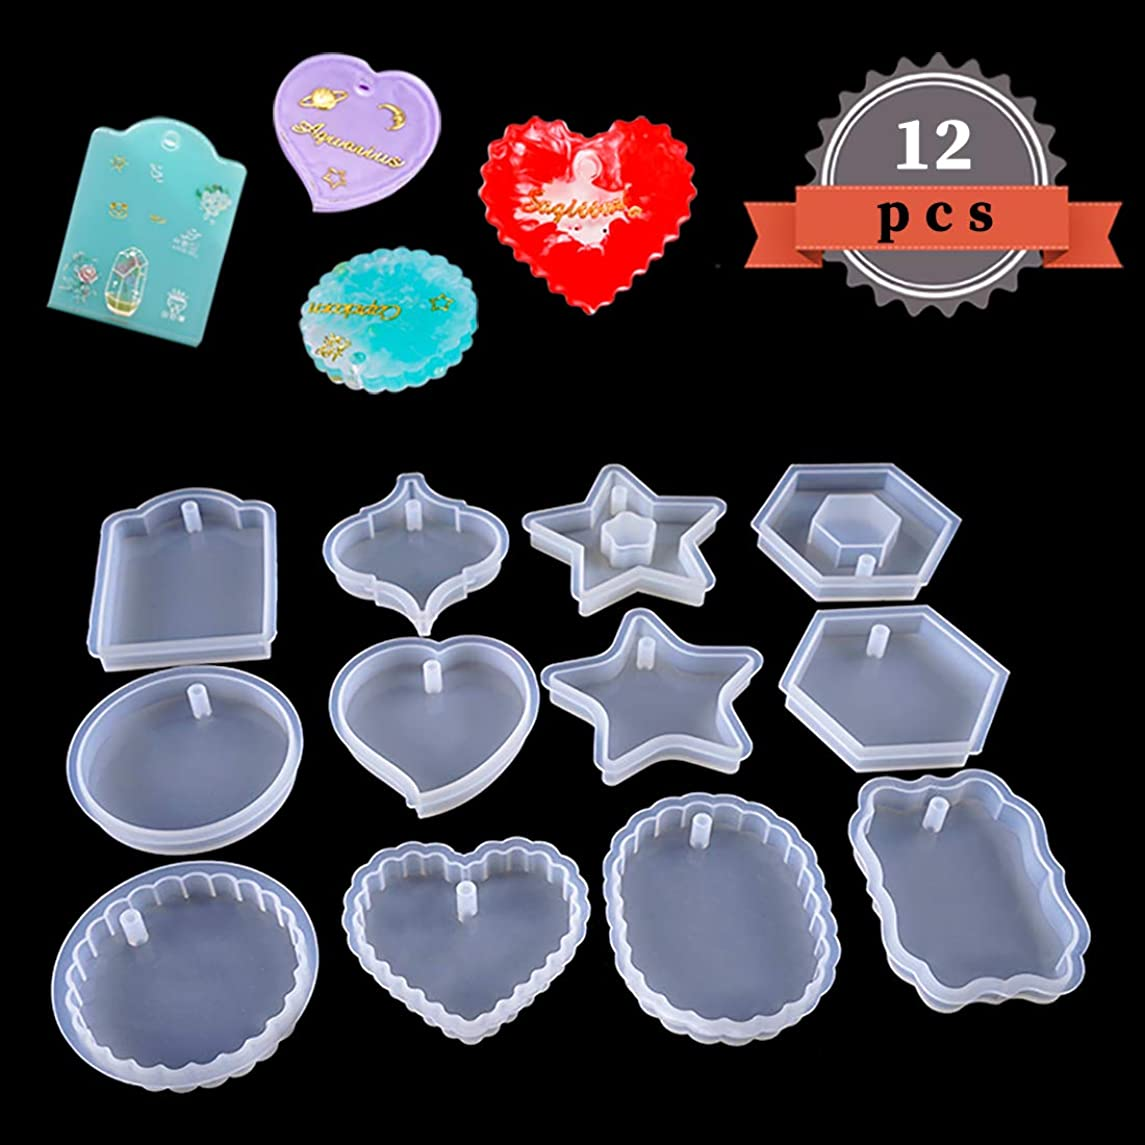 FineInno 12pcs Resin Molds Geometry Pendants Jewelry Making Casting Resin Silicone Mold with Holes for Polymer Clay Crafting